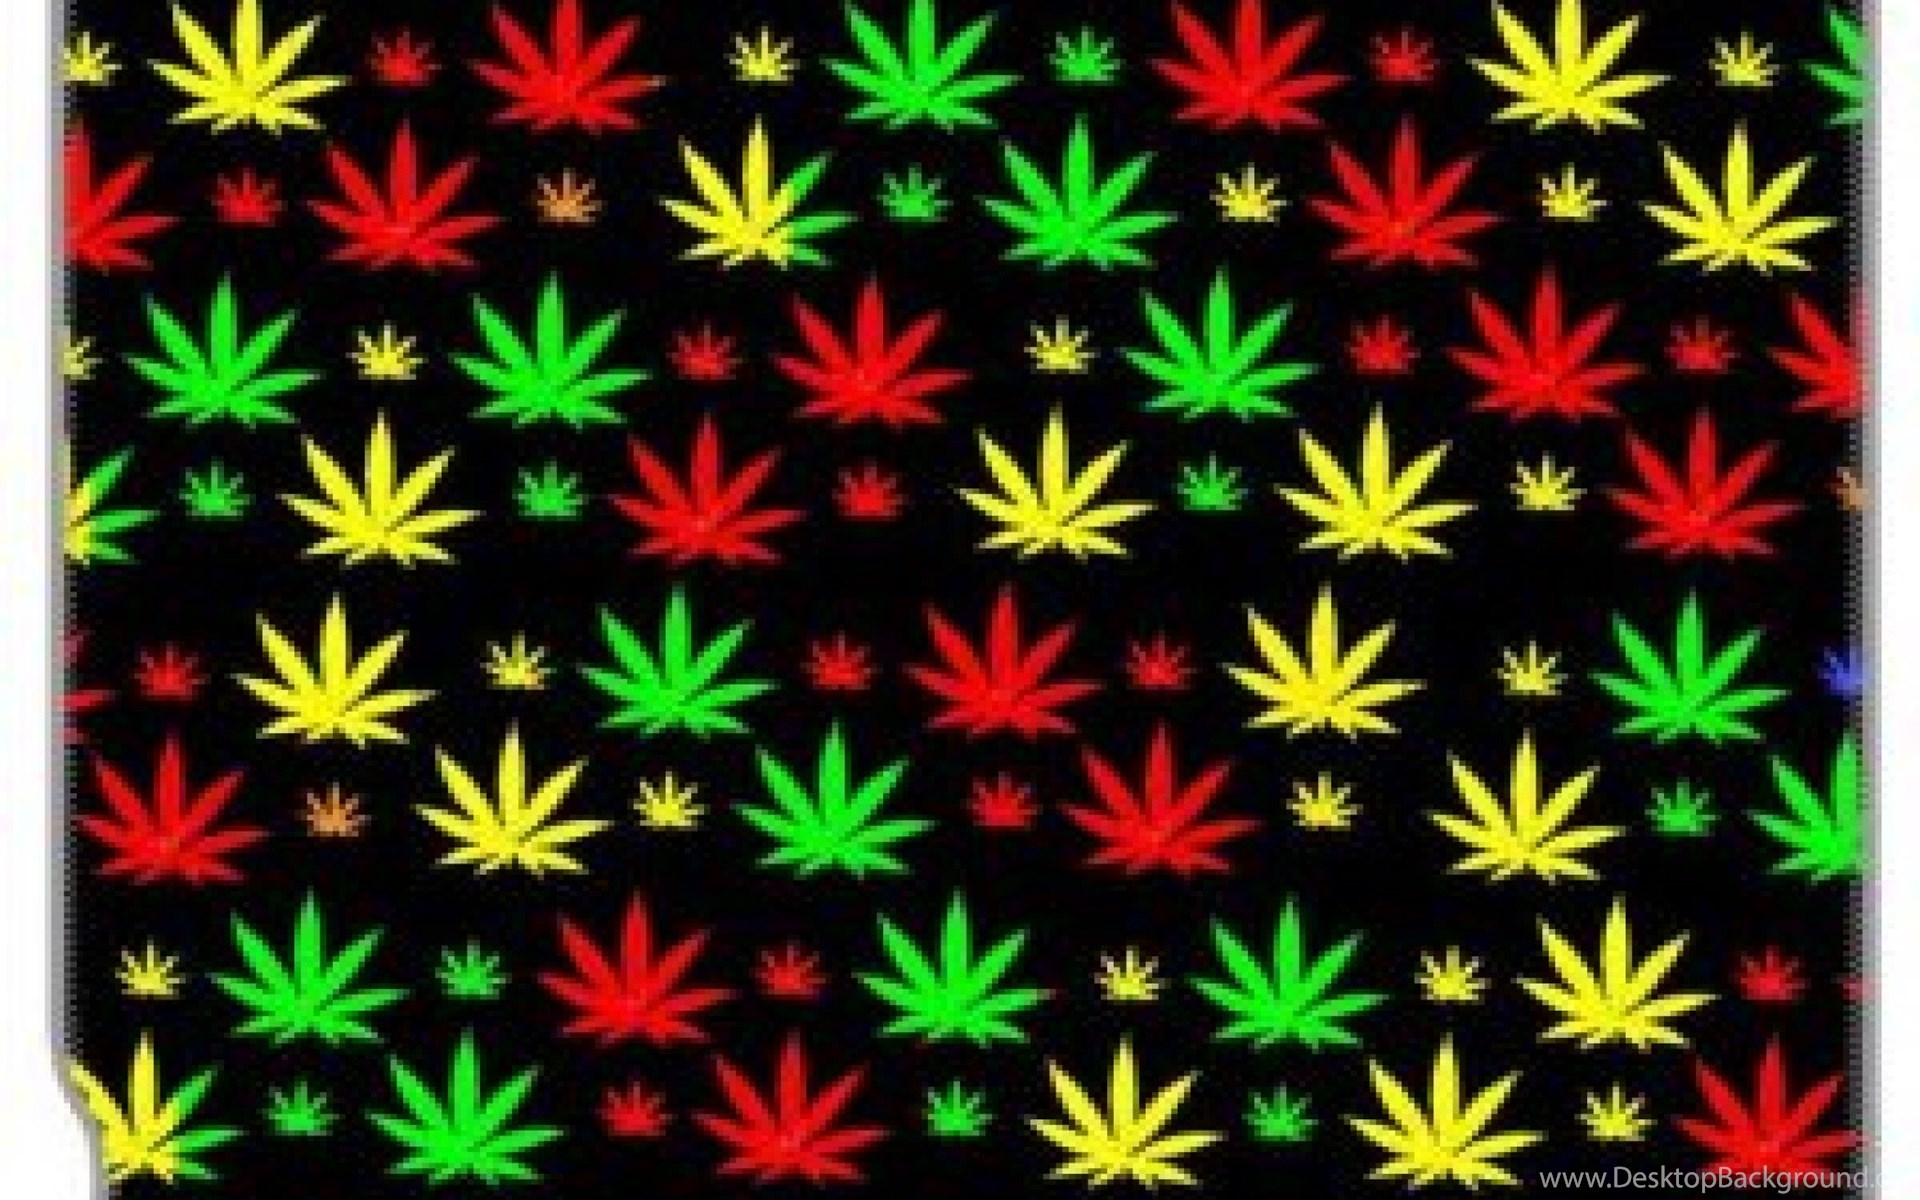 Hd Iphone 4 Wallpapers Weed Wallpapers Resolution Of The